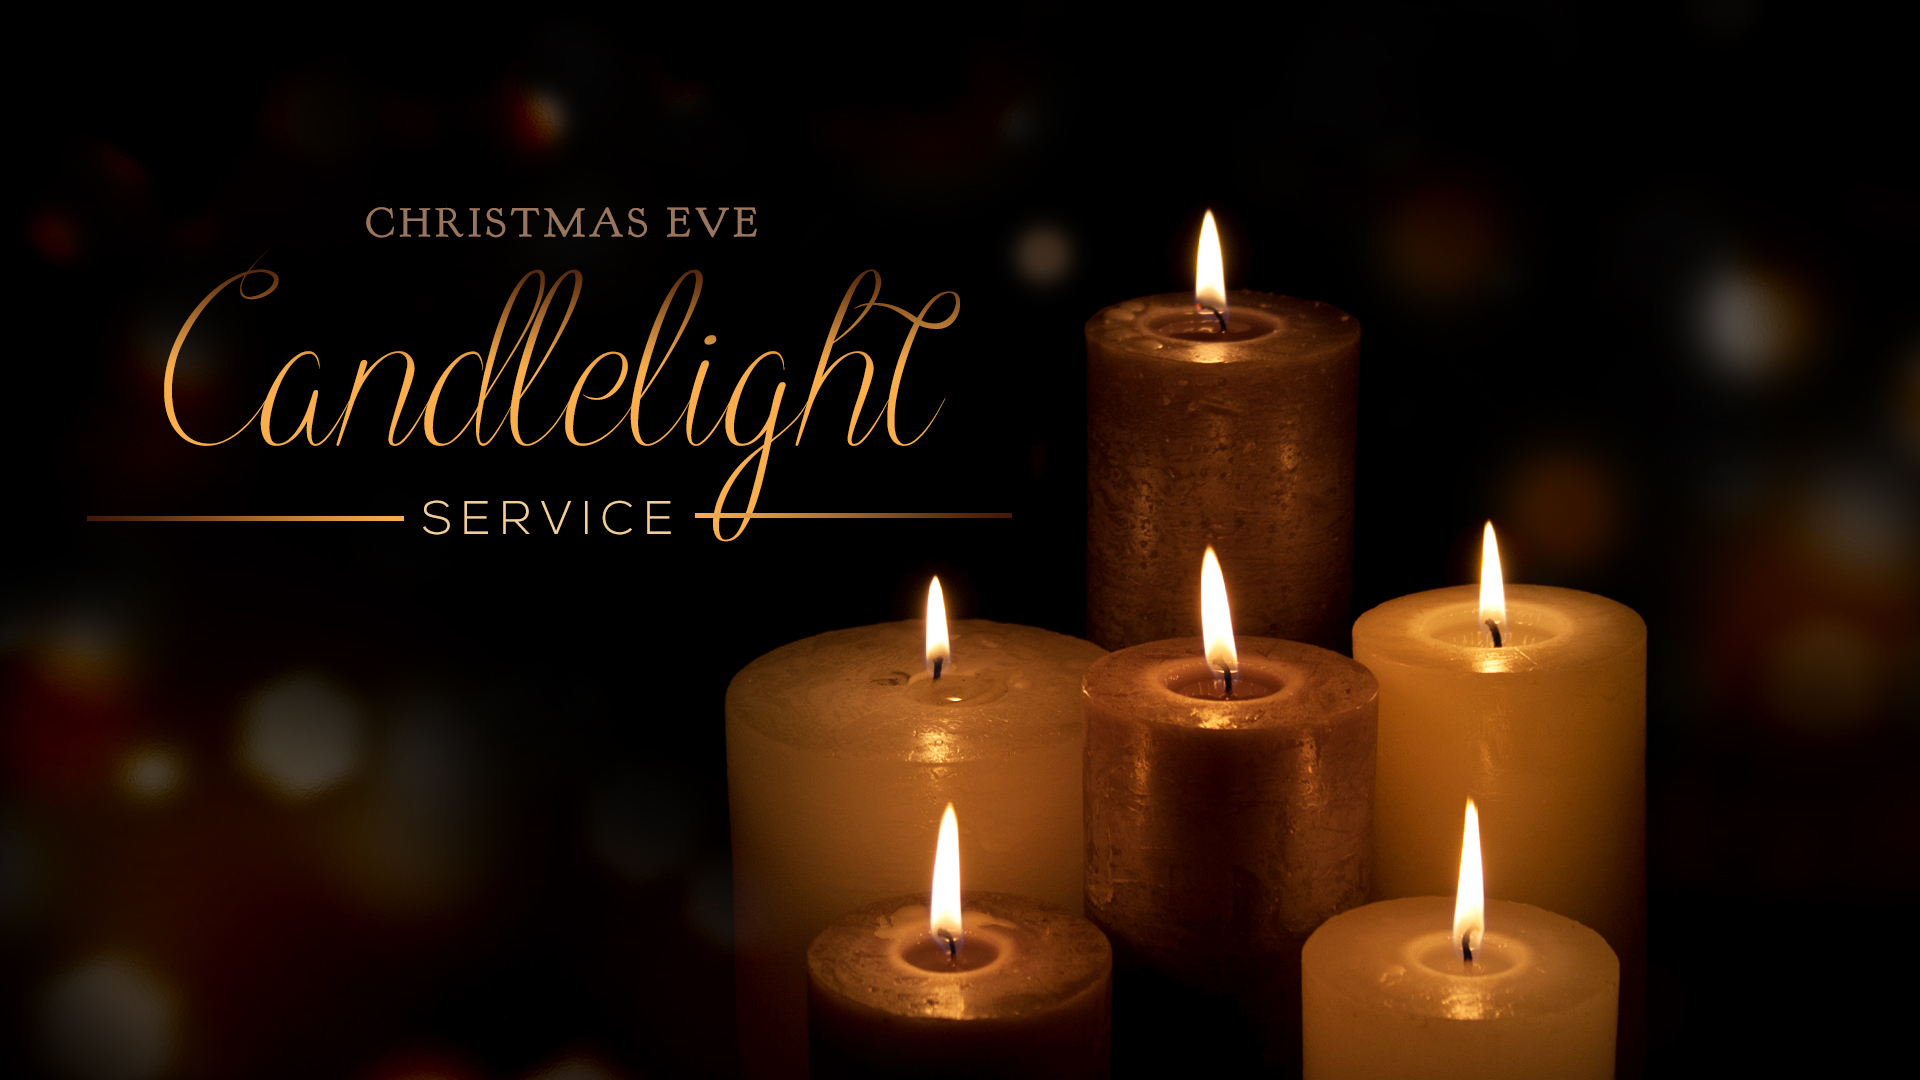 Join us for a time of celebrating our Savior's birth as we hear the Christmas Story read from the Bible and sing song's of praise to God for sending His Son to earth.